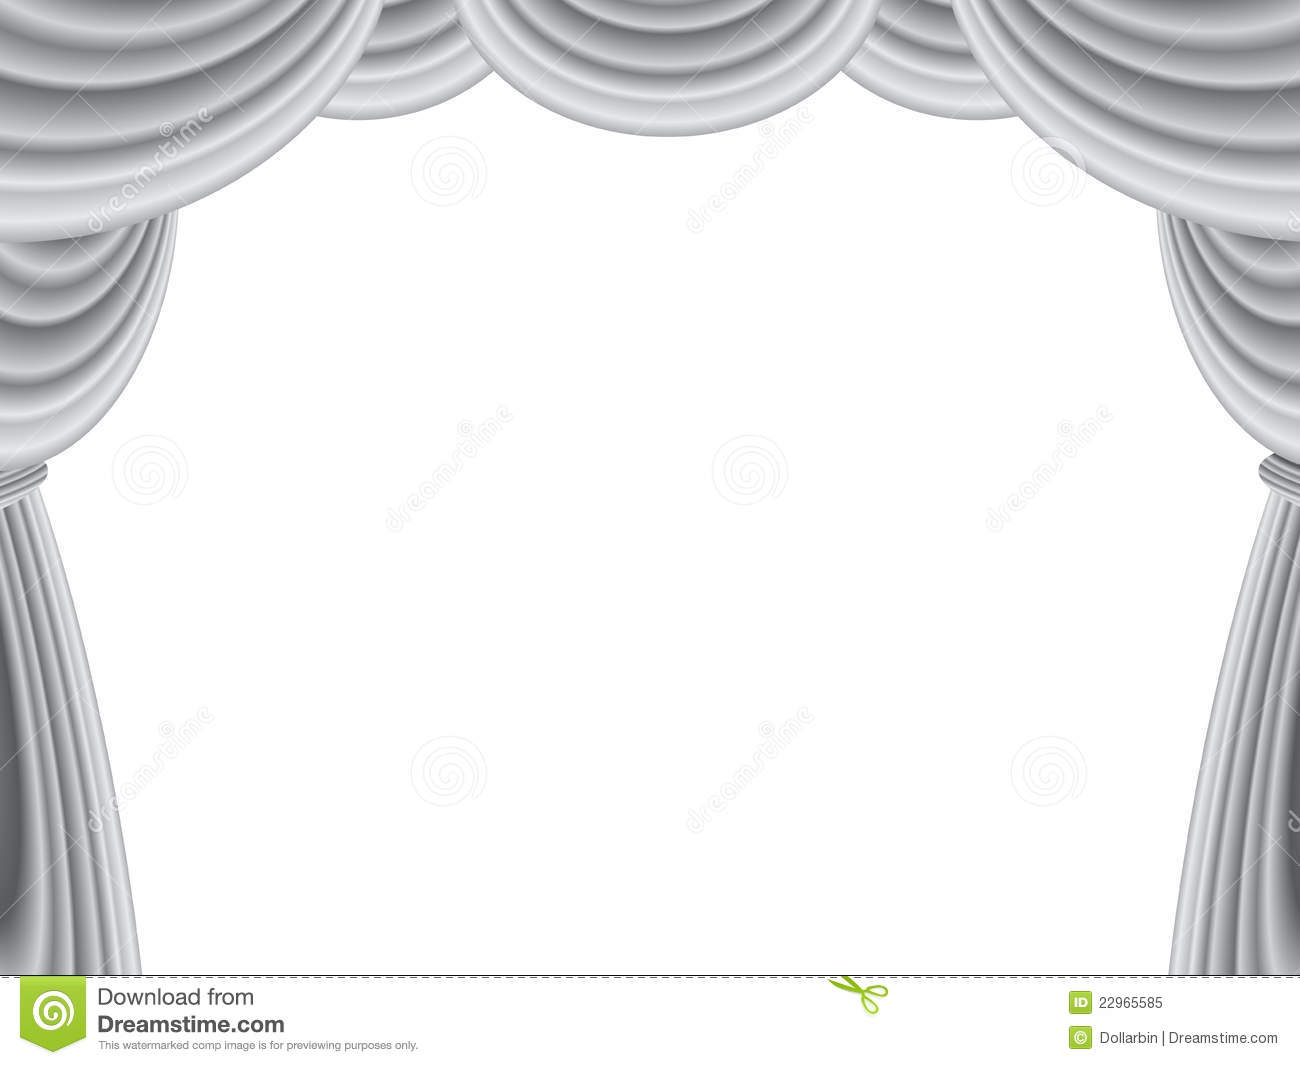 Closed stage curtains clipart black and white svg stock Stage Curtains Drawing at PaintingValley.com | Explore collection of ... svg stock